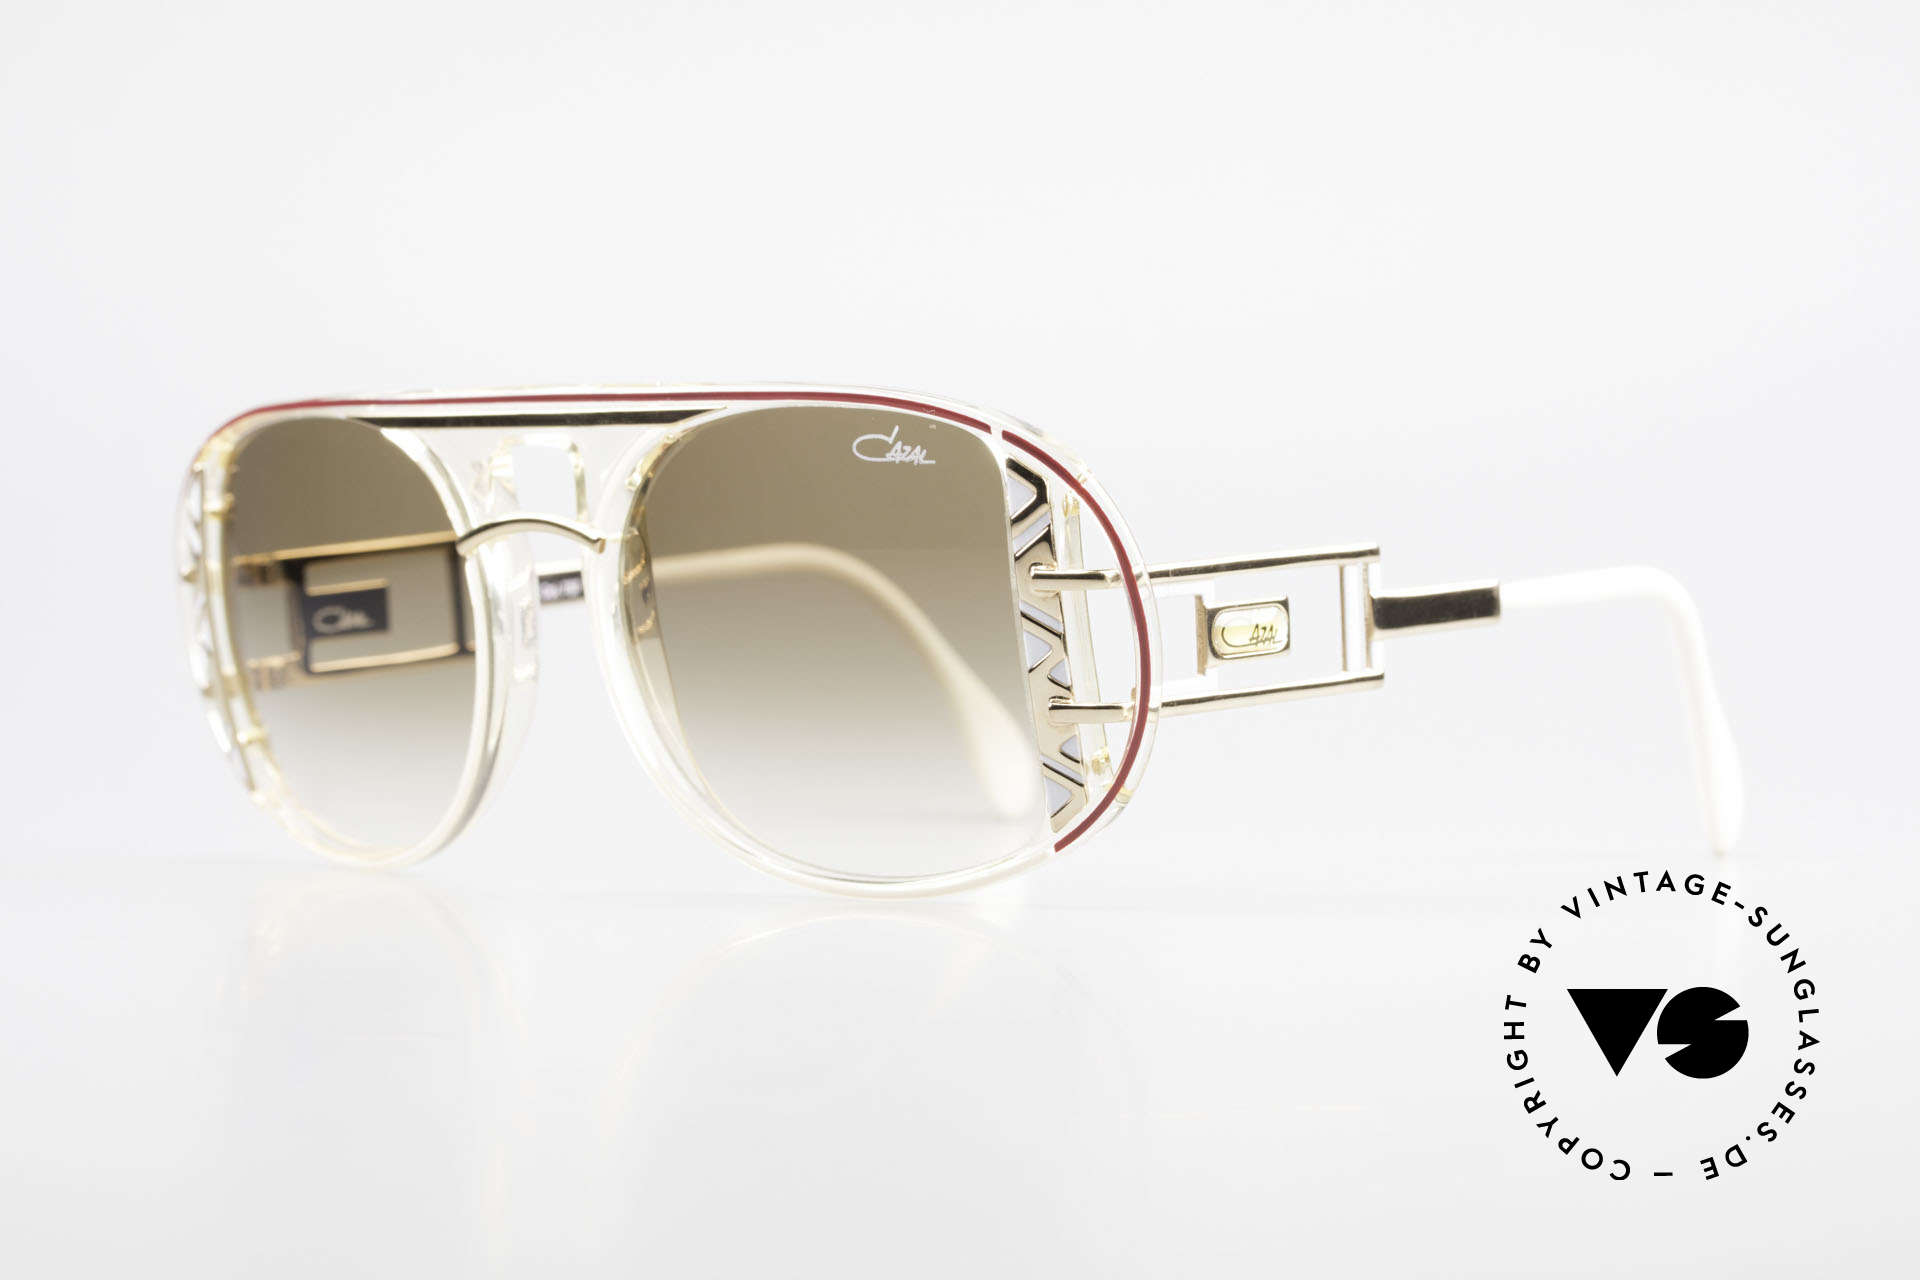 Cazal 875 Extraordinary 90's Sunglasses, unique quality & complex coloring - just vintage!, Made for Men and Women